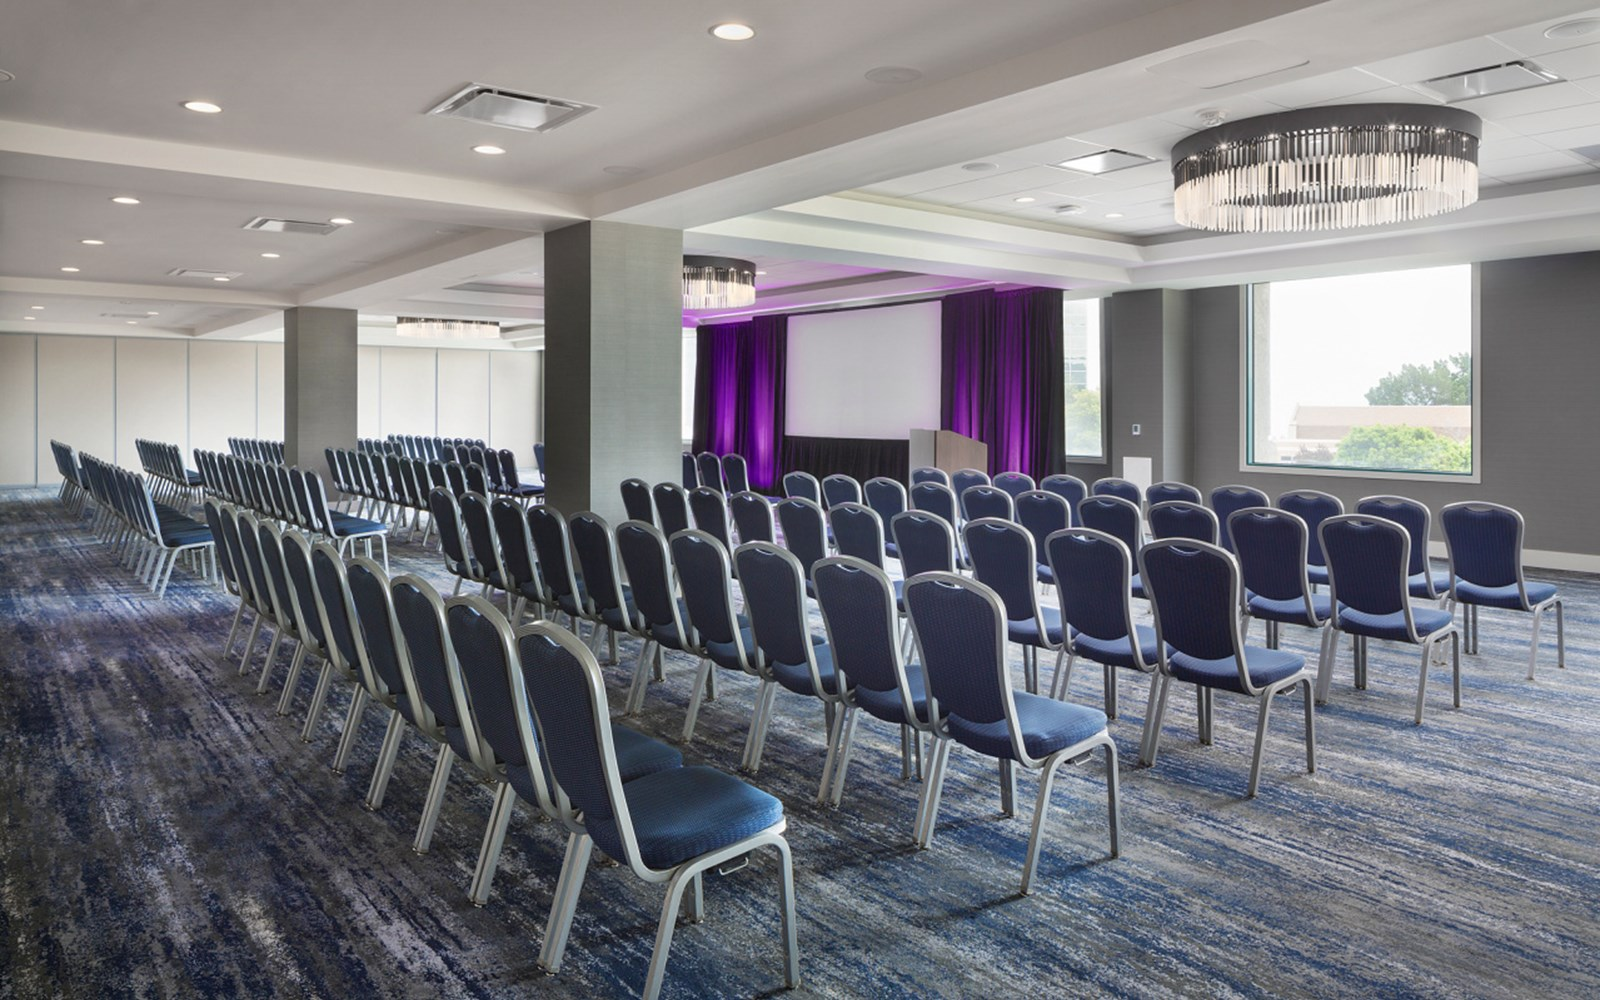 Sequoia B meeting room in theater style setup